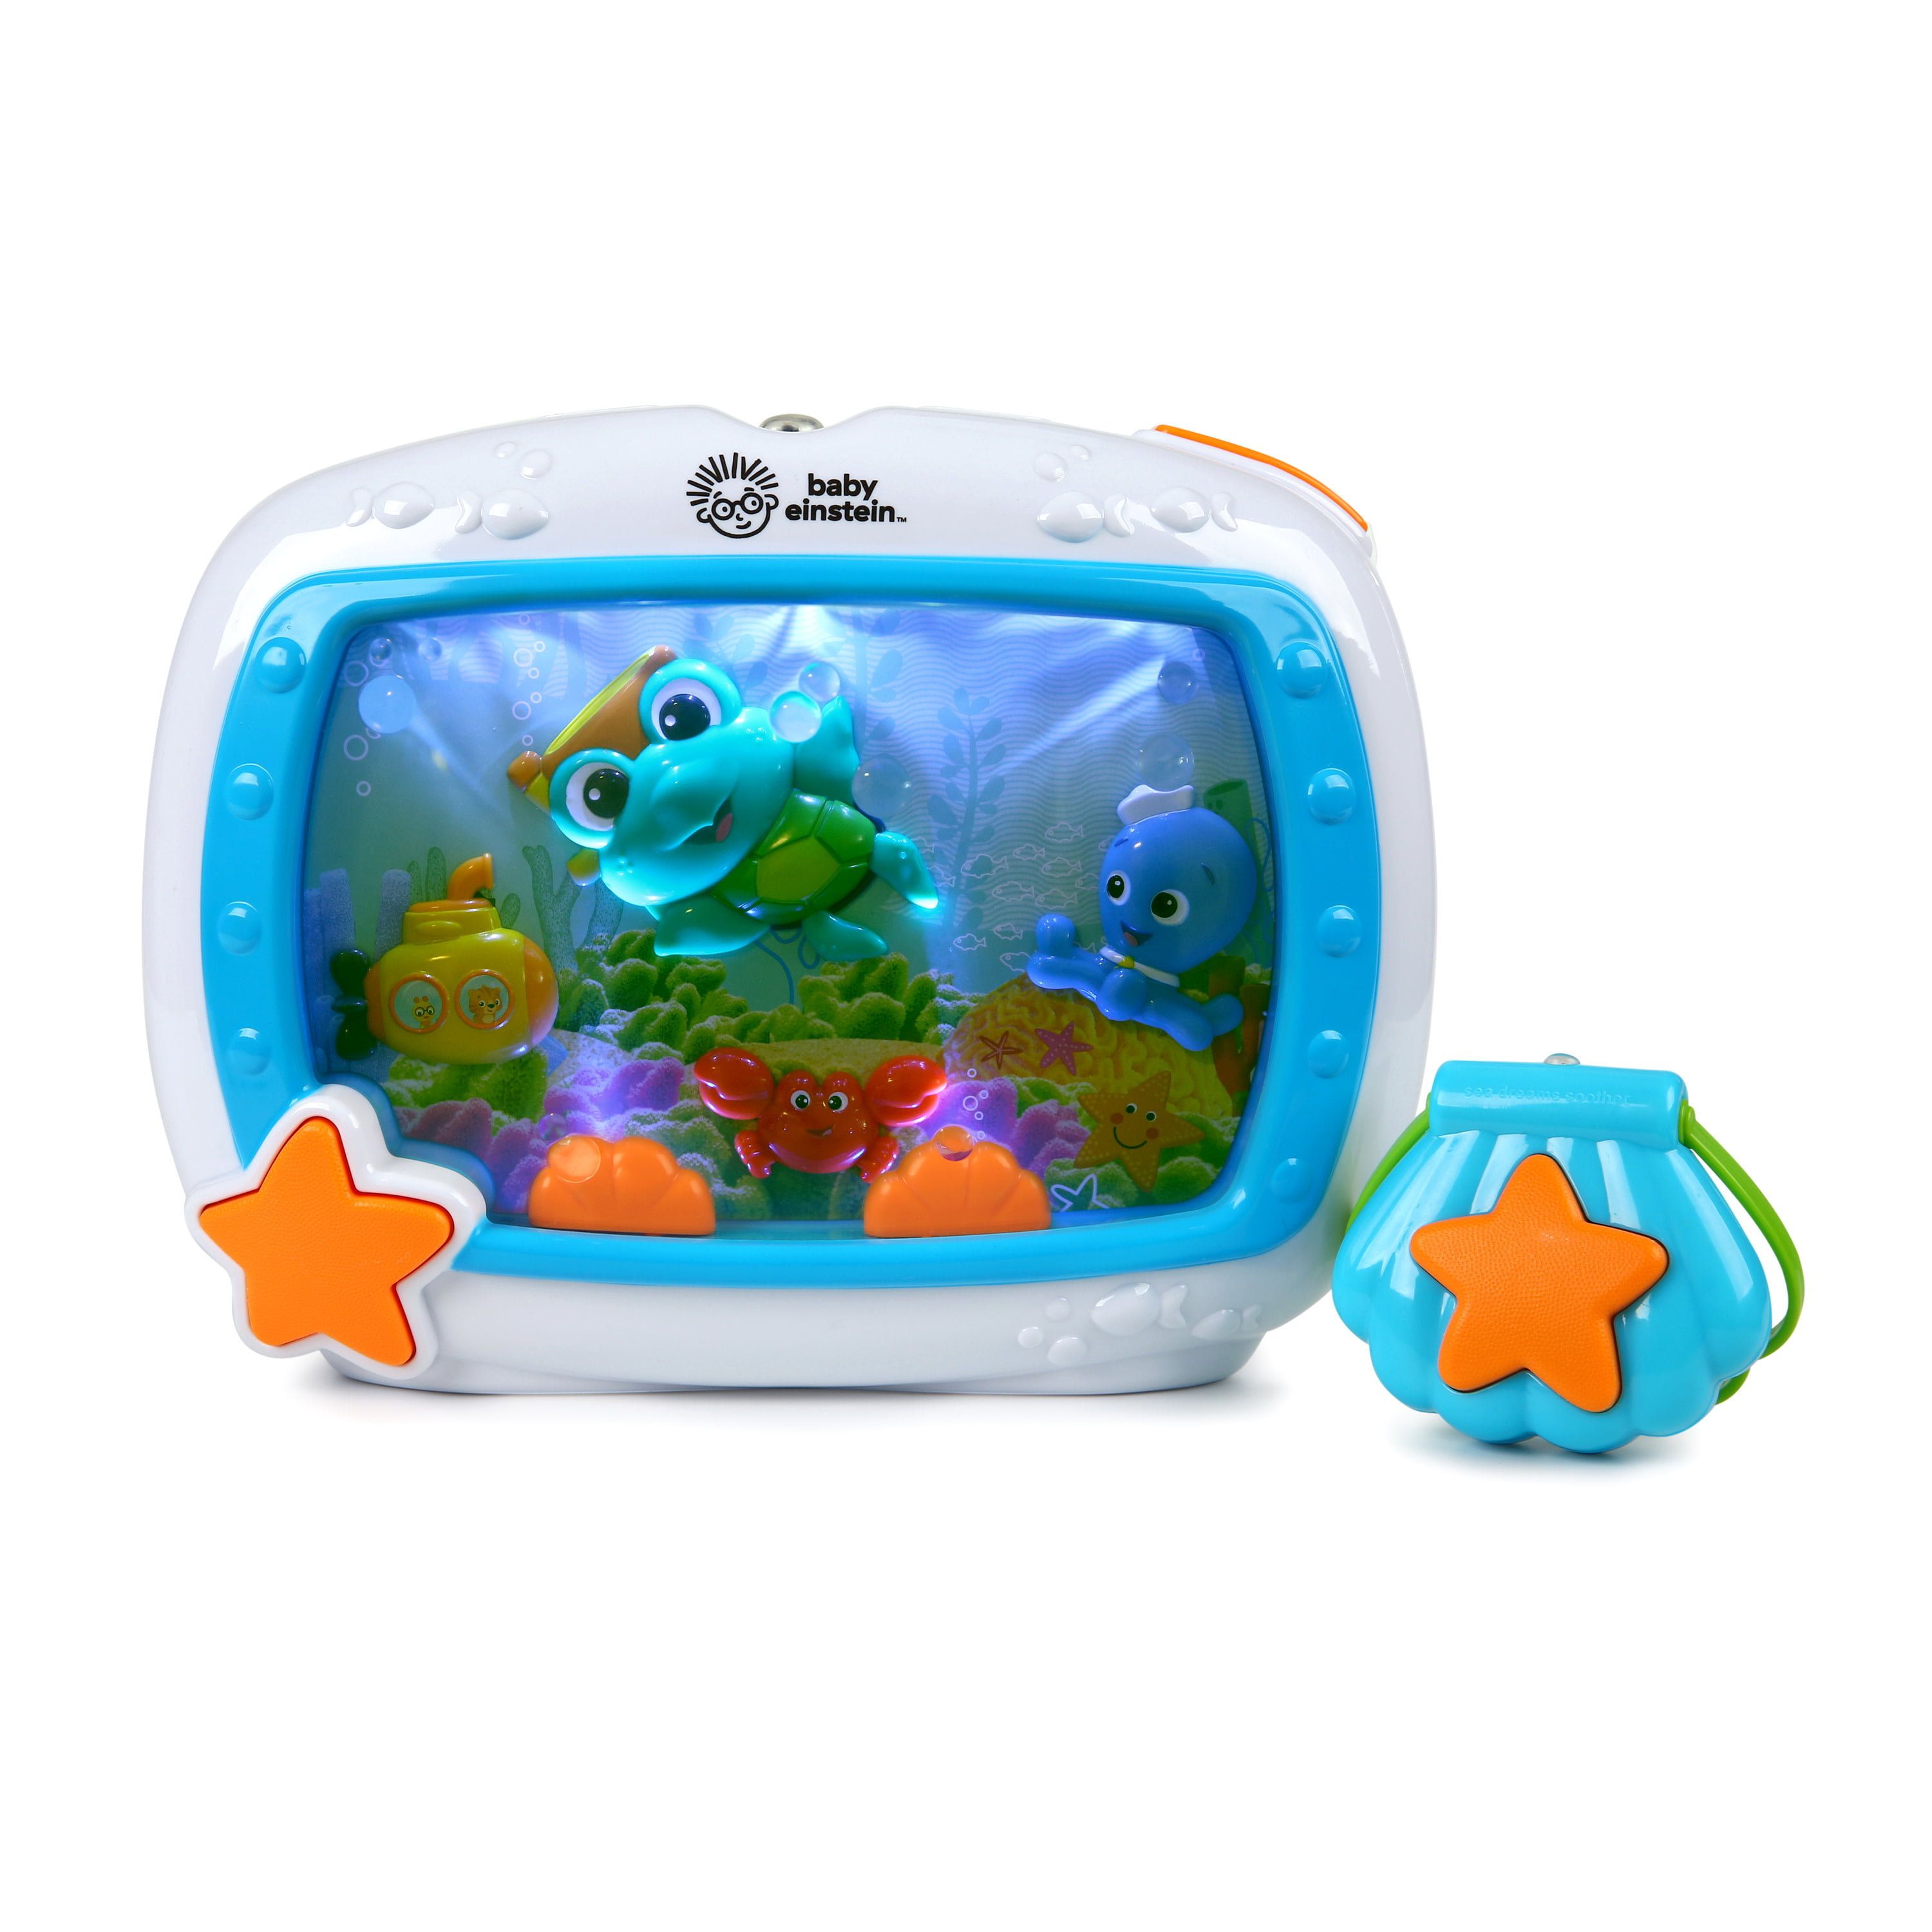 Baby Einstein Sea Dreams Soother Musical Crib Toy And Sound Machine With Remote Lights And Melodies Newborns Walmart Com Walmart Com Use sea shells, stones, sand, pipe cleaners and make fish to create your own. baby einstein